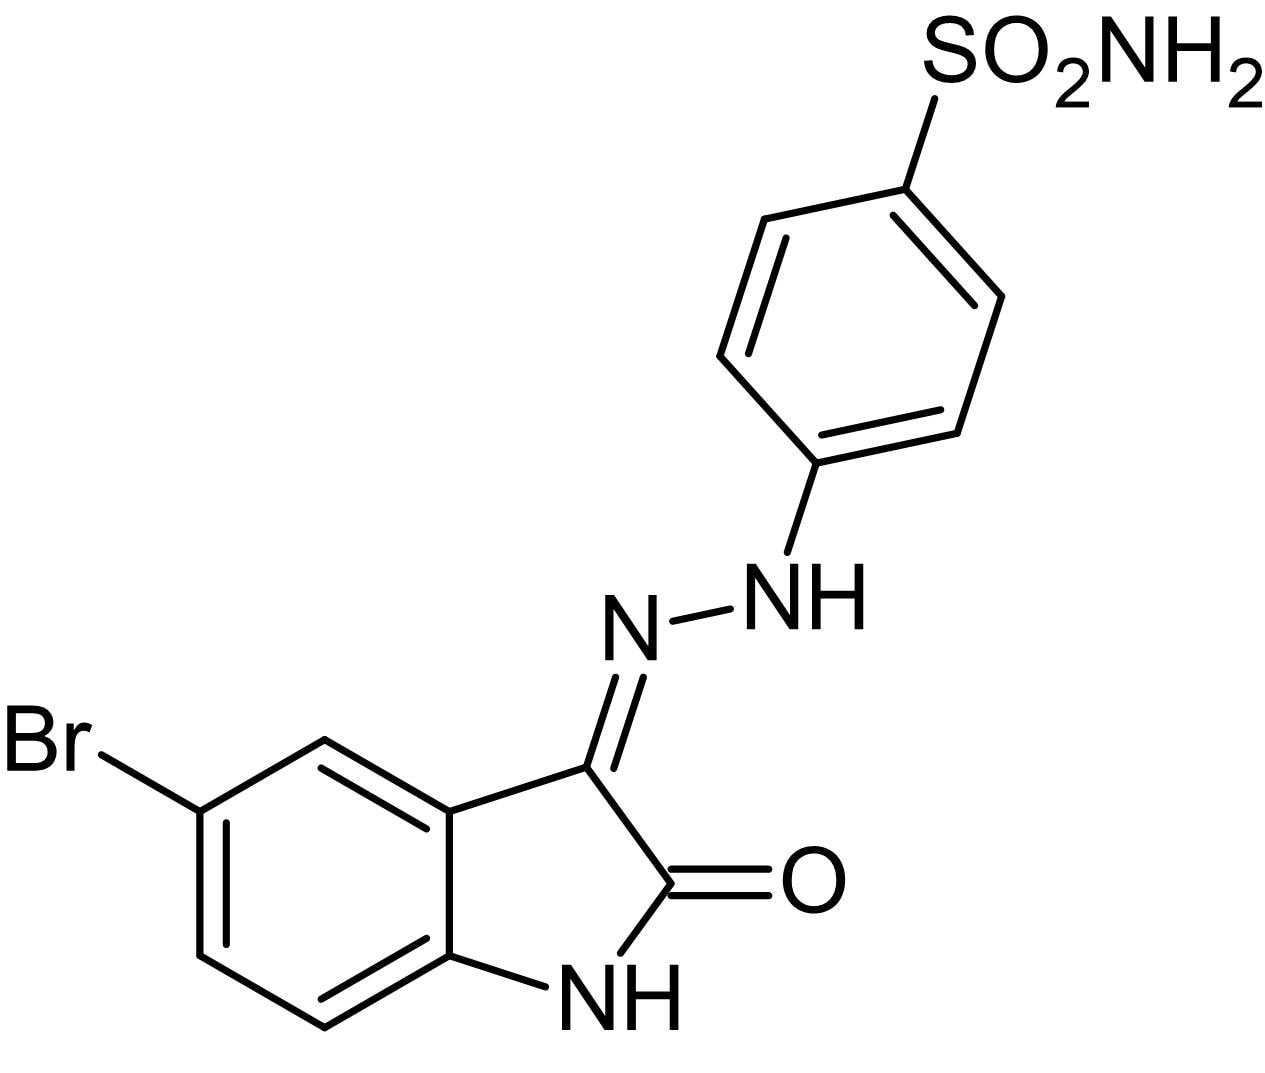 Chemical Structure - SC 221409, Cdk2 inhibitor (ab145053)